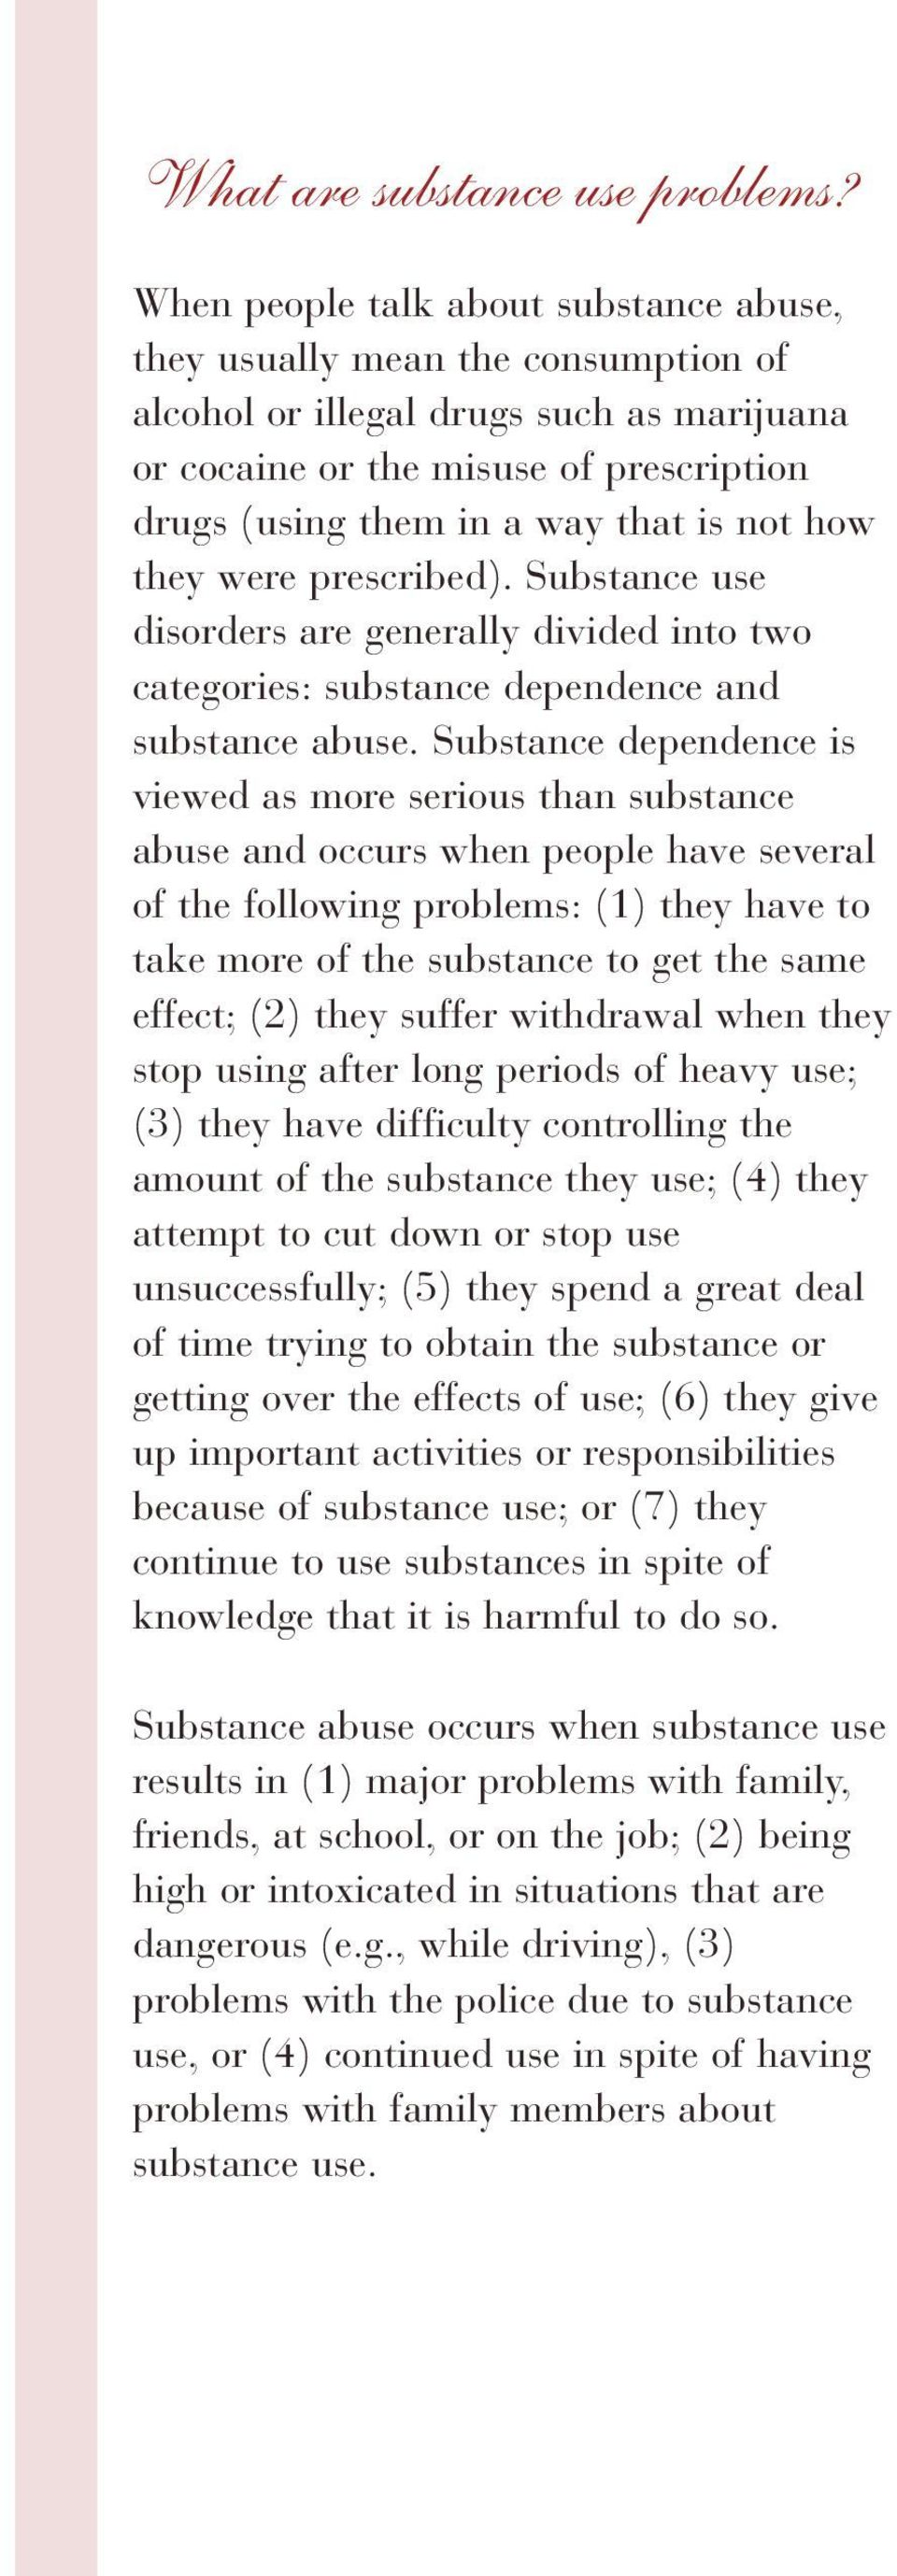 how they were prescribed). Substance use disorders are generally divided into two categories: substance dependence and substance abuse.